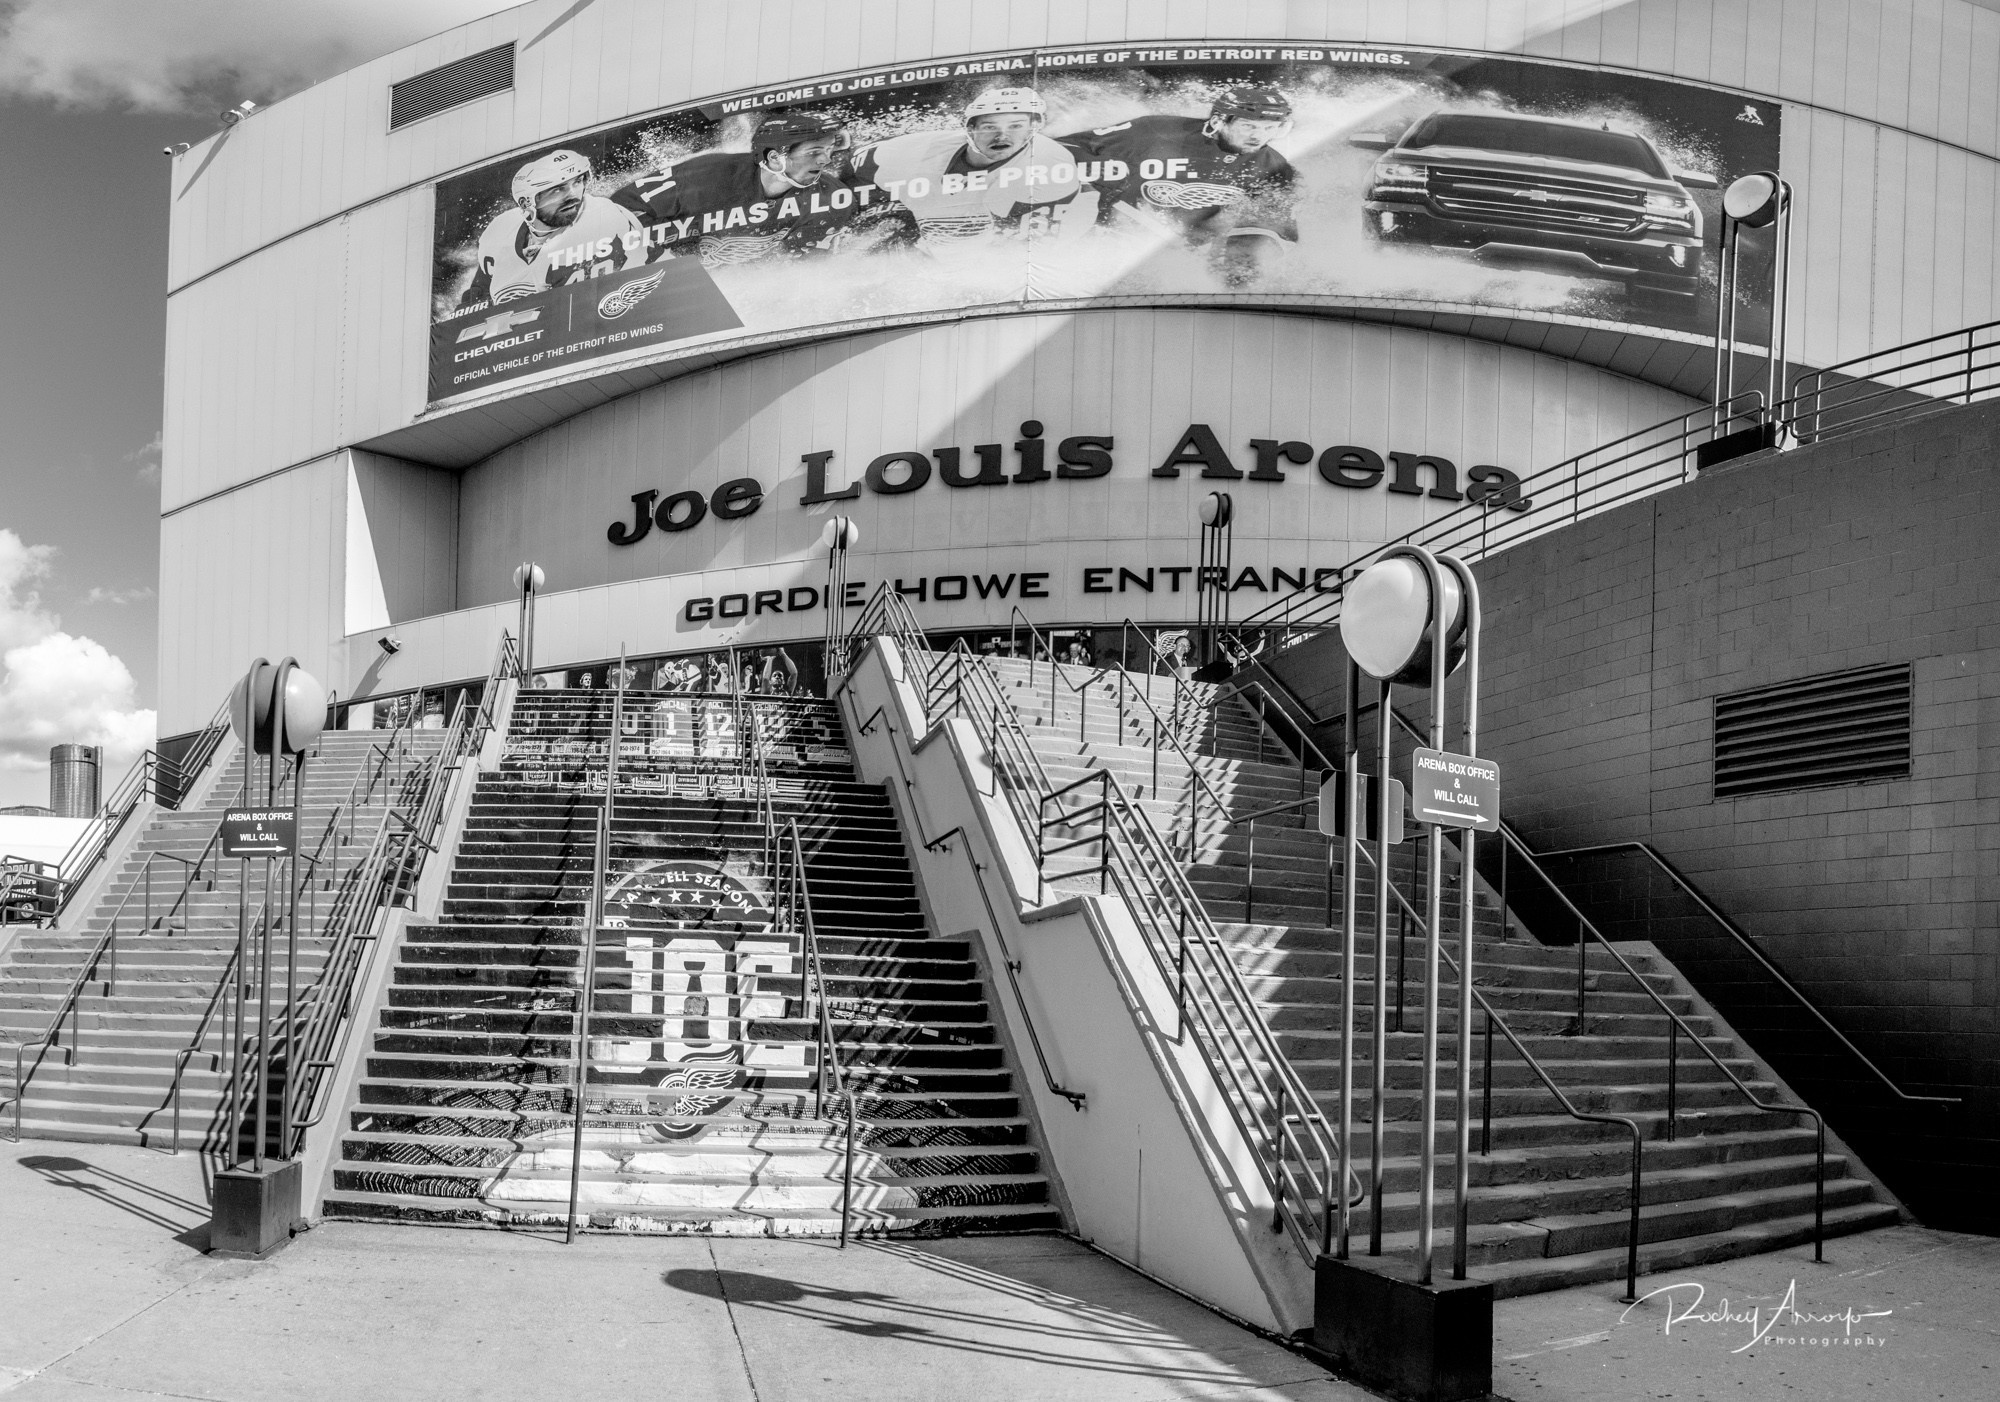 Joe Louis Arena--1504968736158